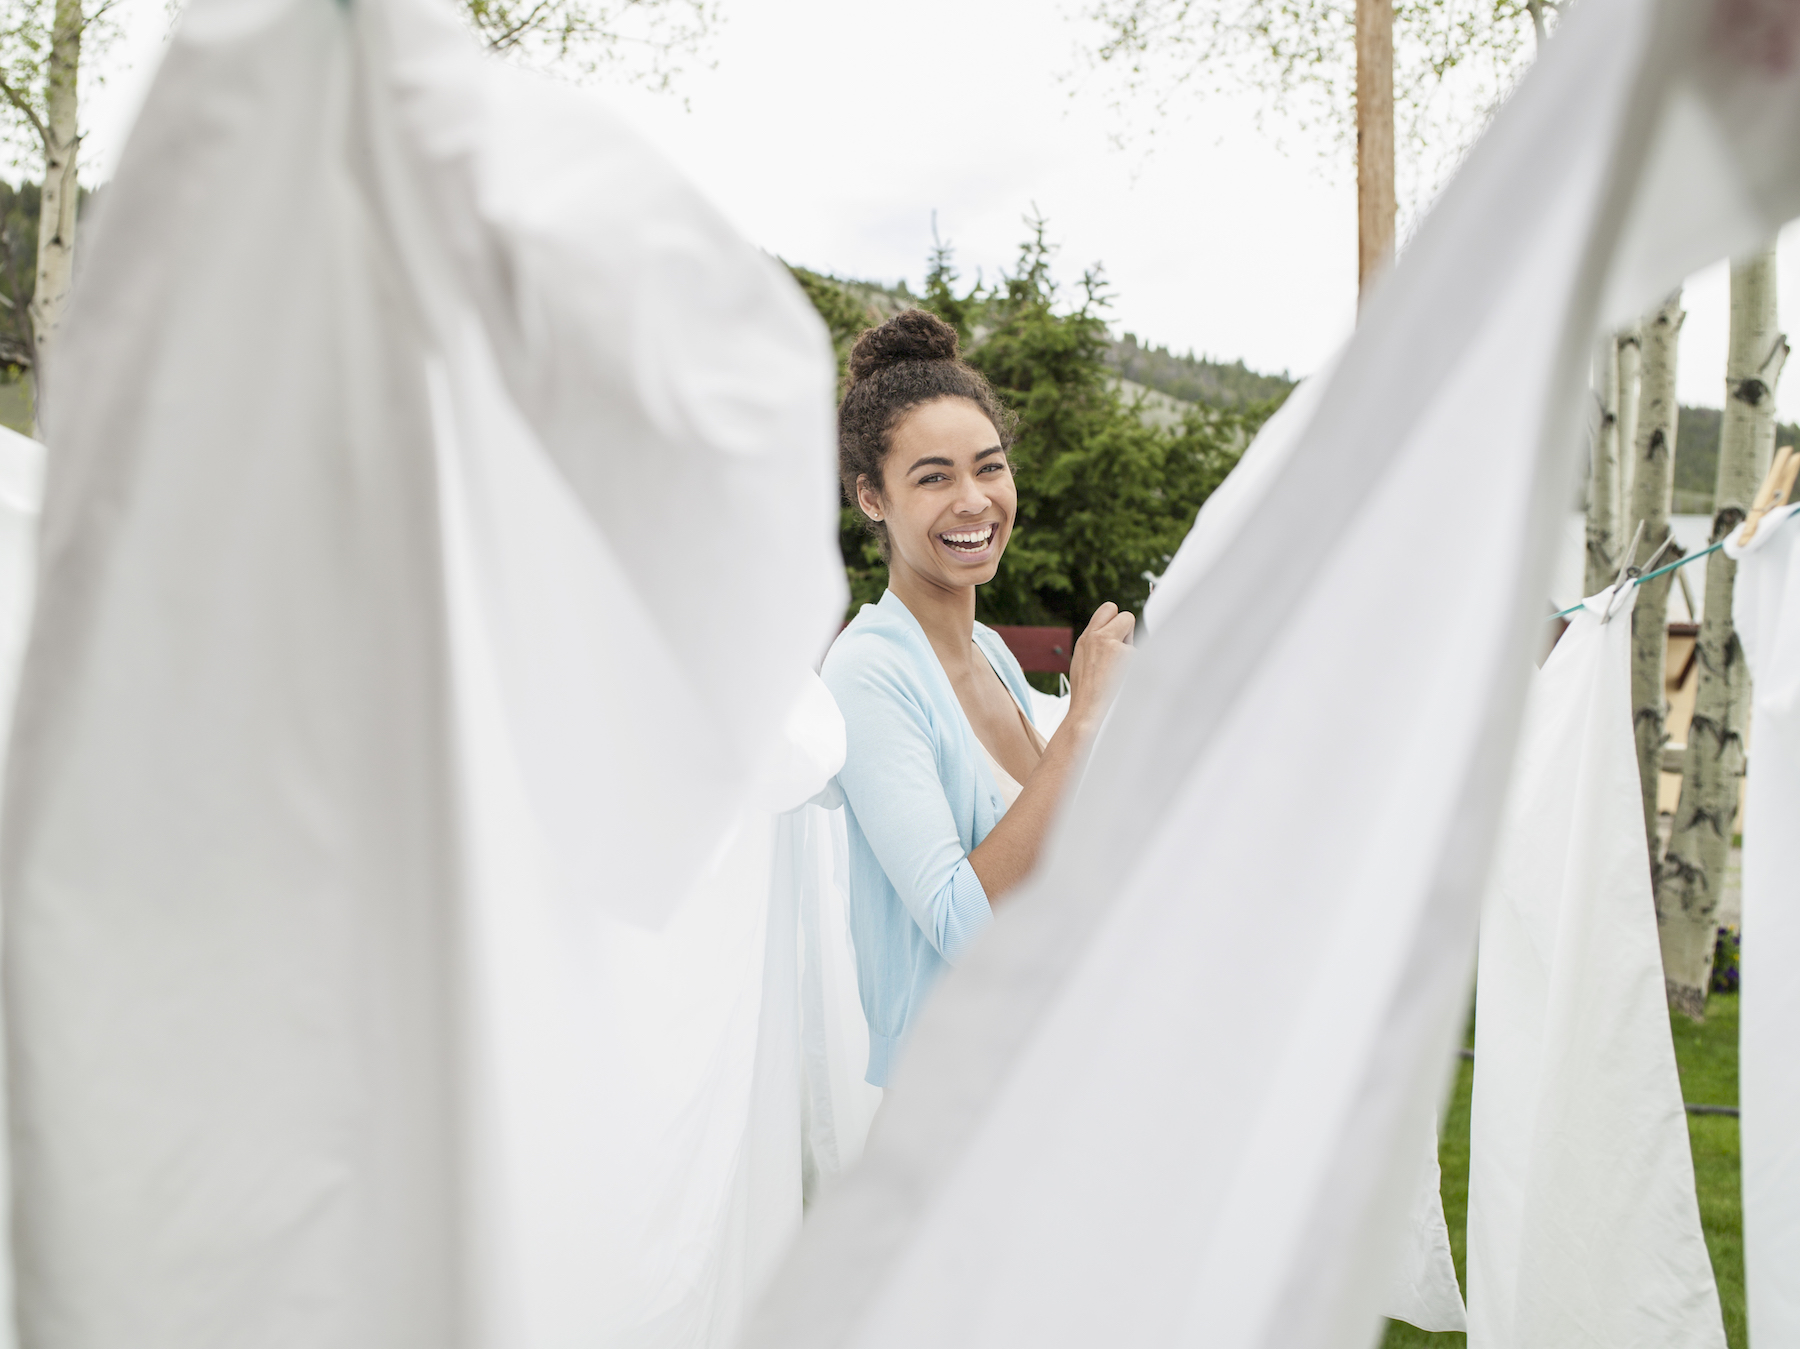 Woman hanging sheets outside to dry